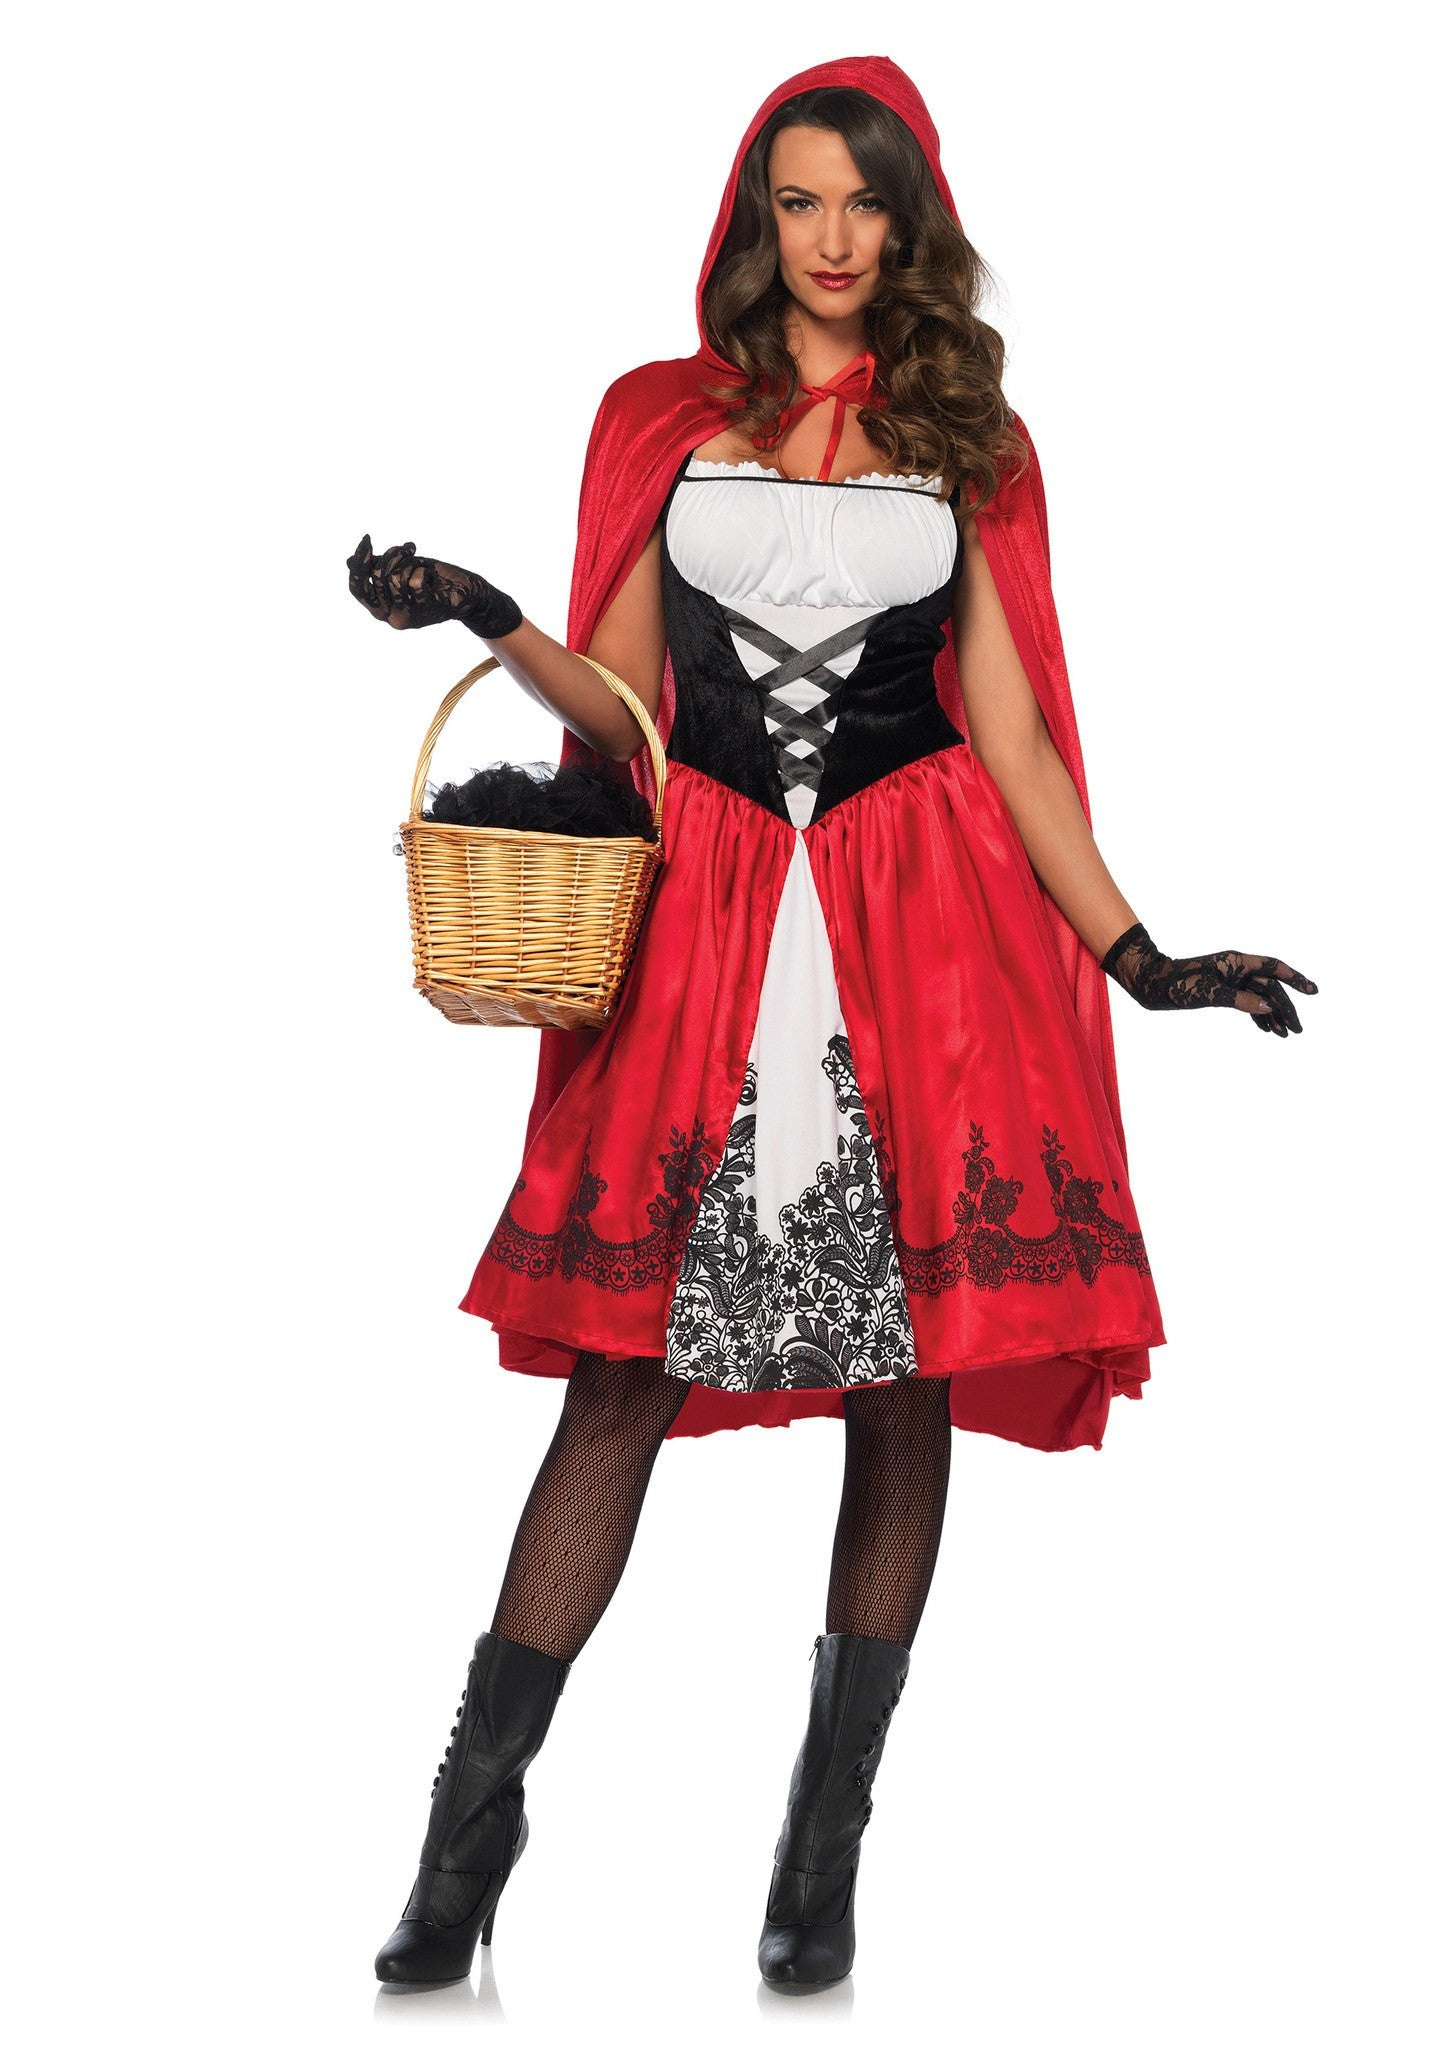 Classic Red Riding Hood Costume - Little Red Riding Hood-9184